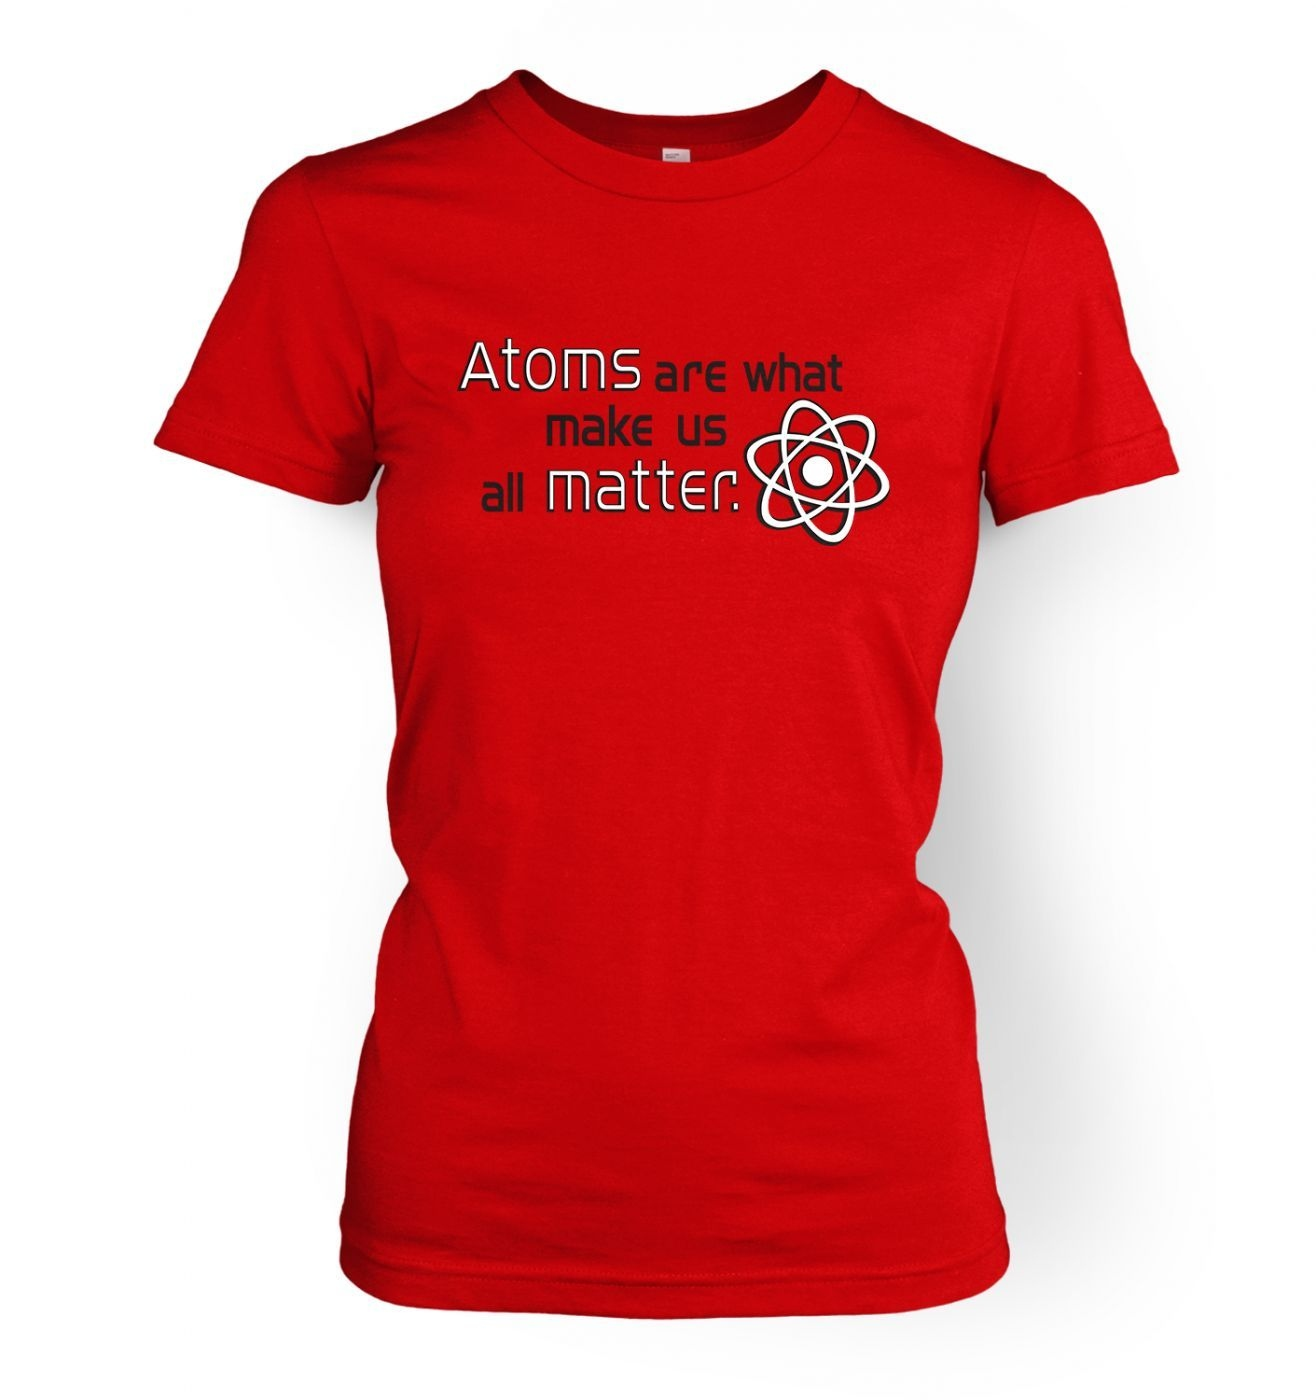 Women's Atoms matter t-shirt